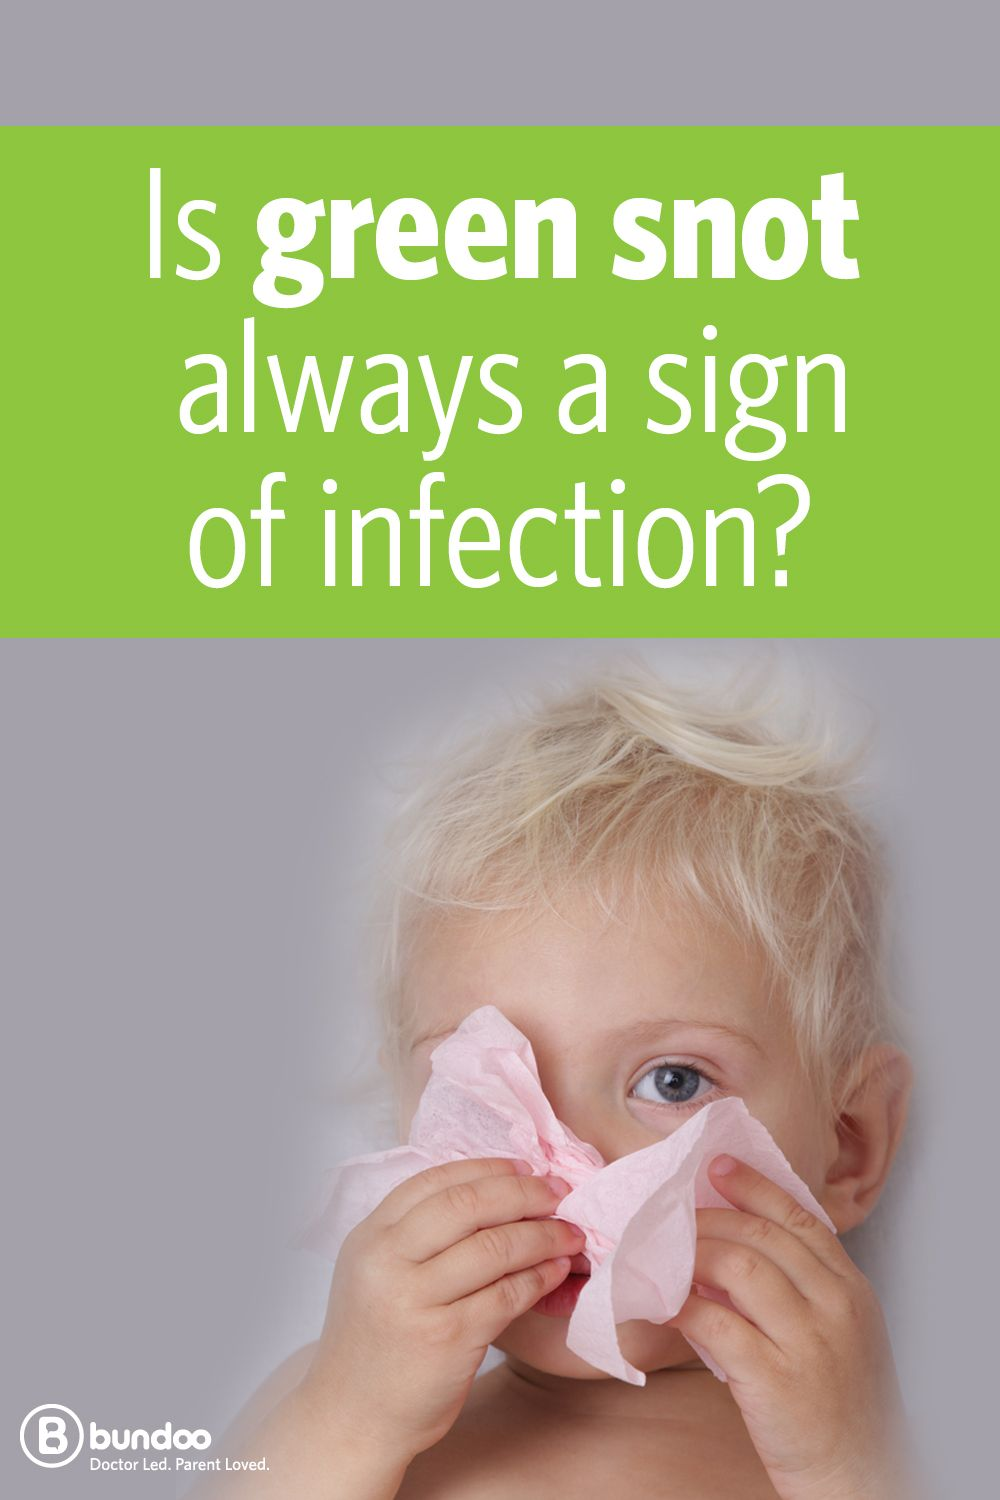 Green snot in children - a sign of infection